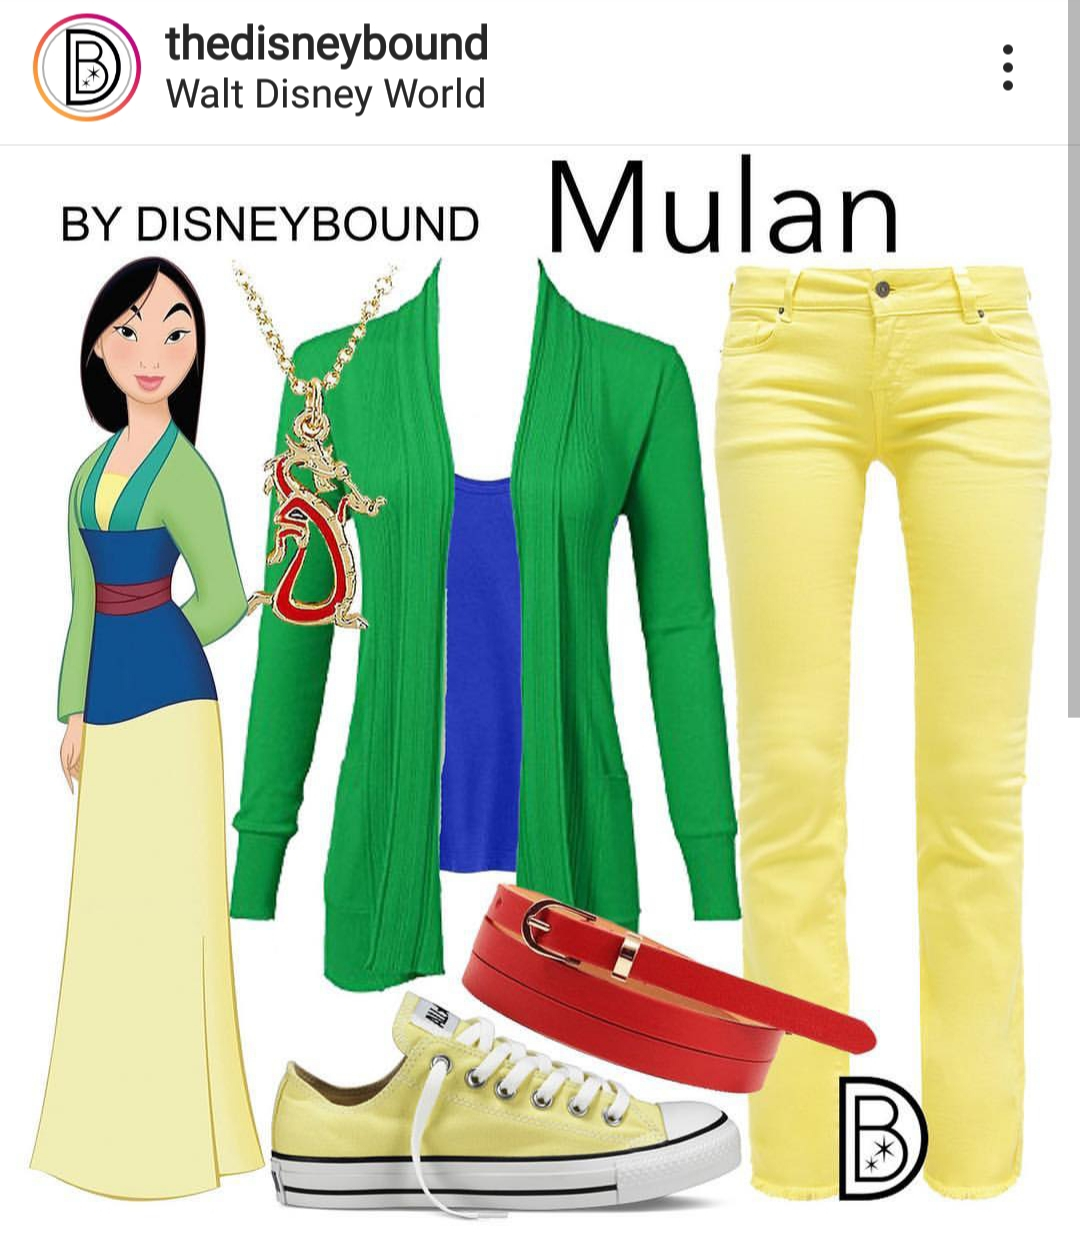 mulan-disneybound